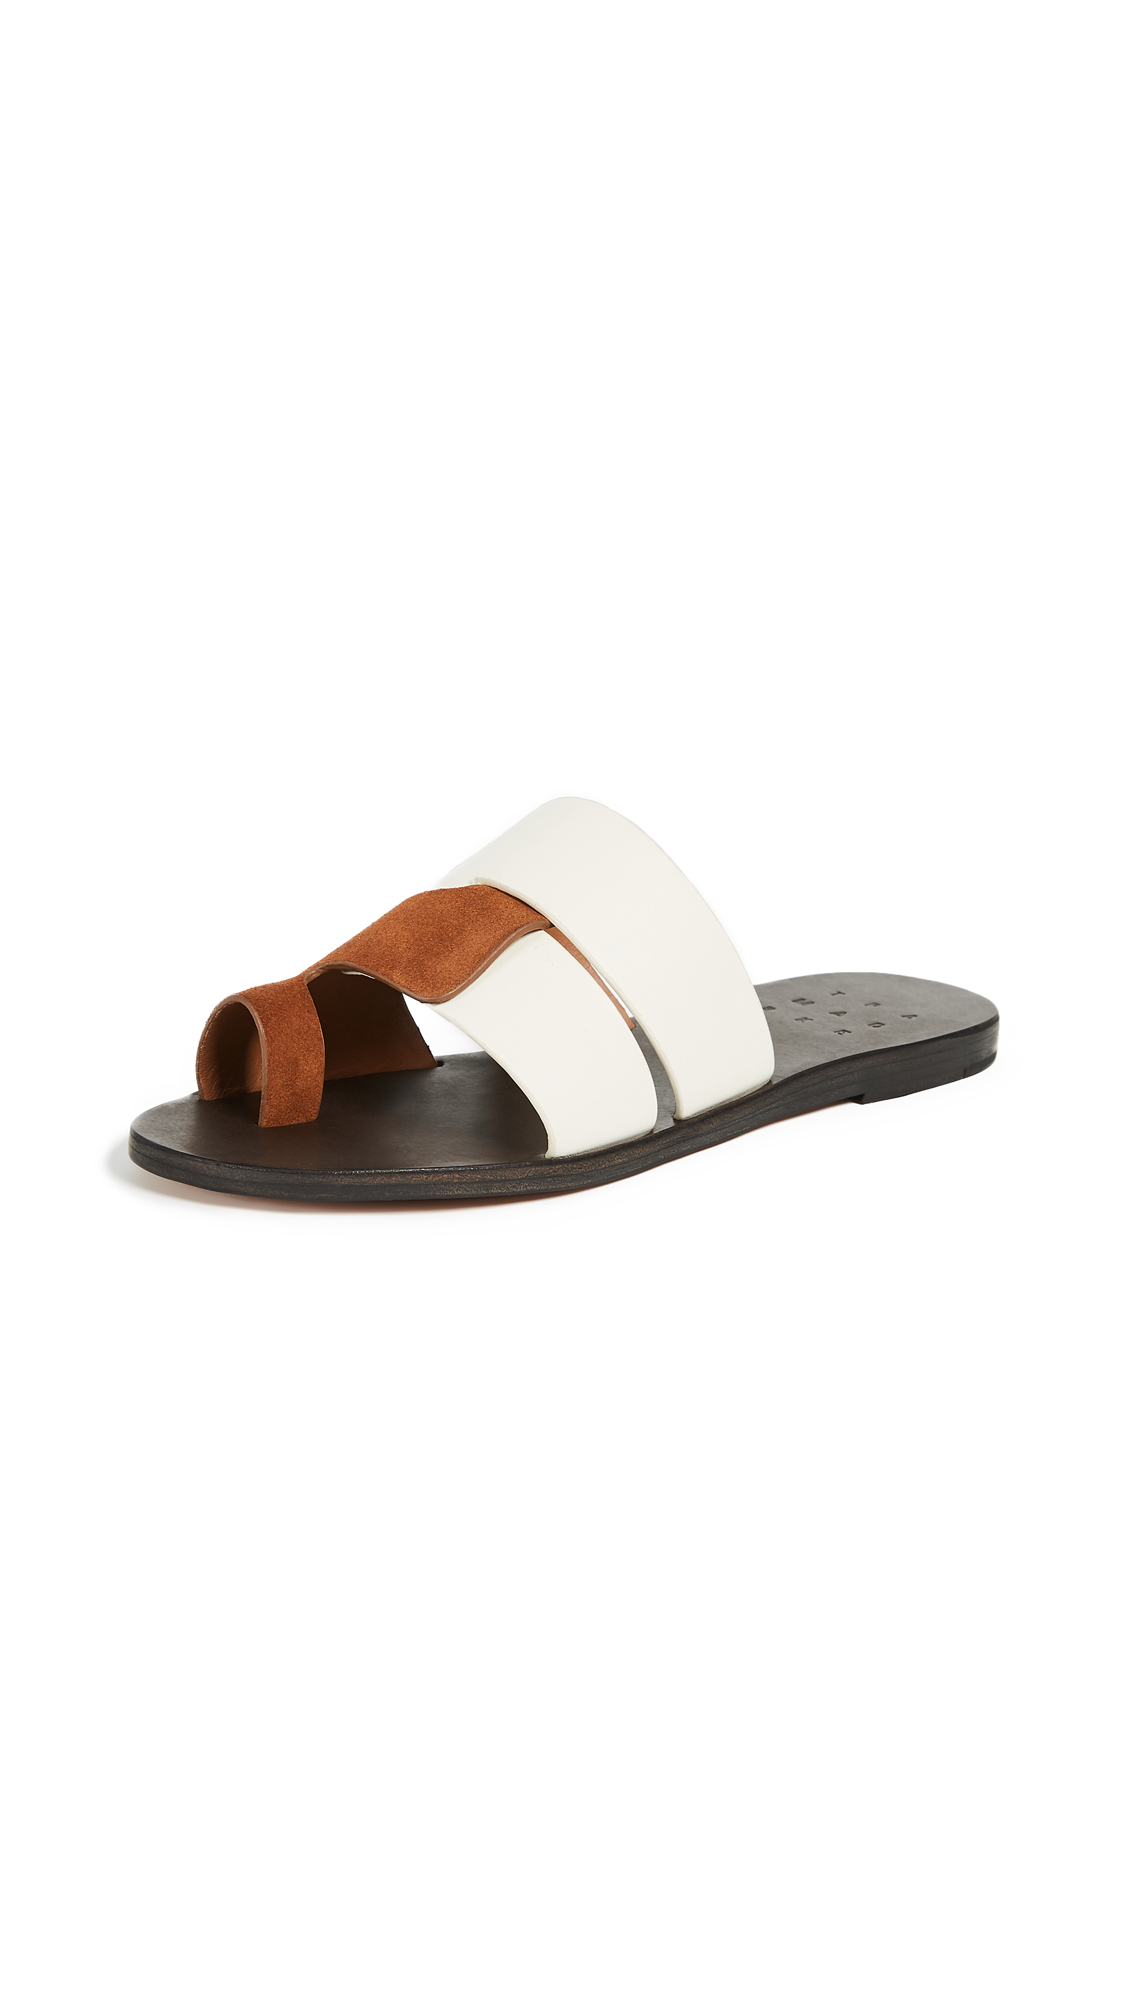 Trademark Cadiz Sandals - White/Saddle